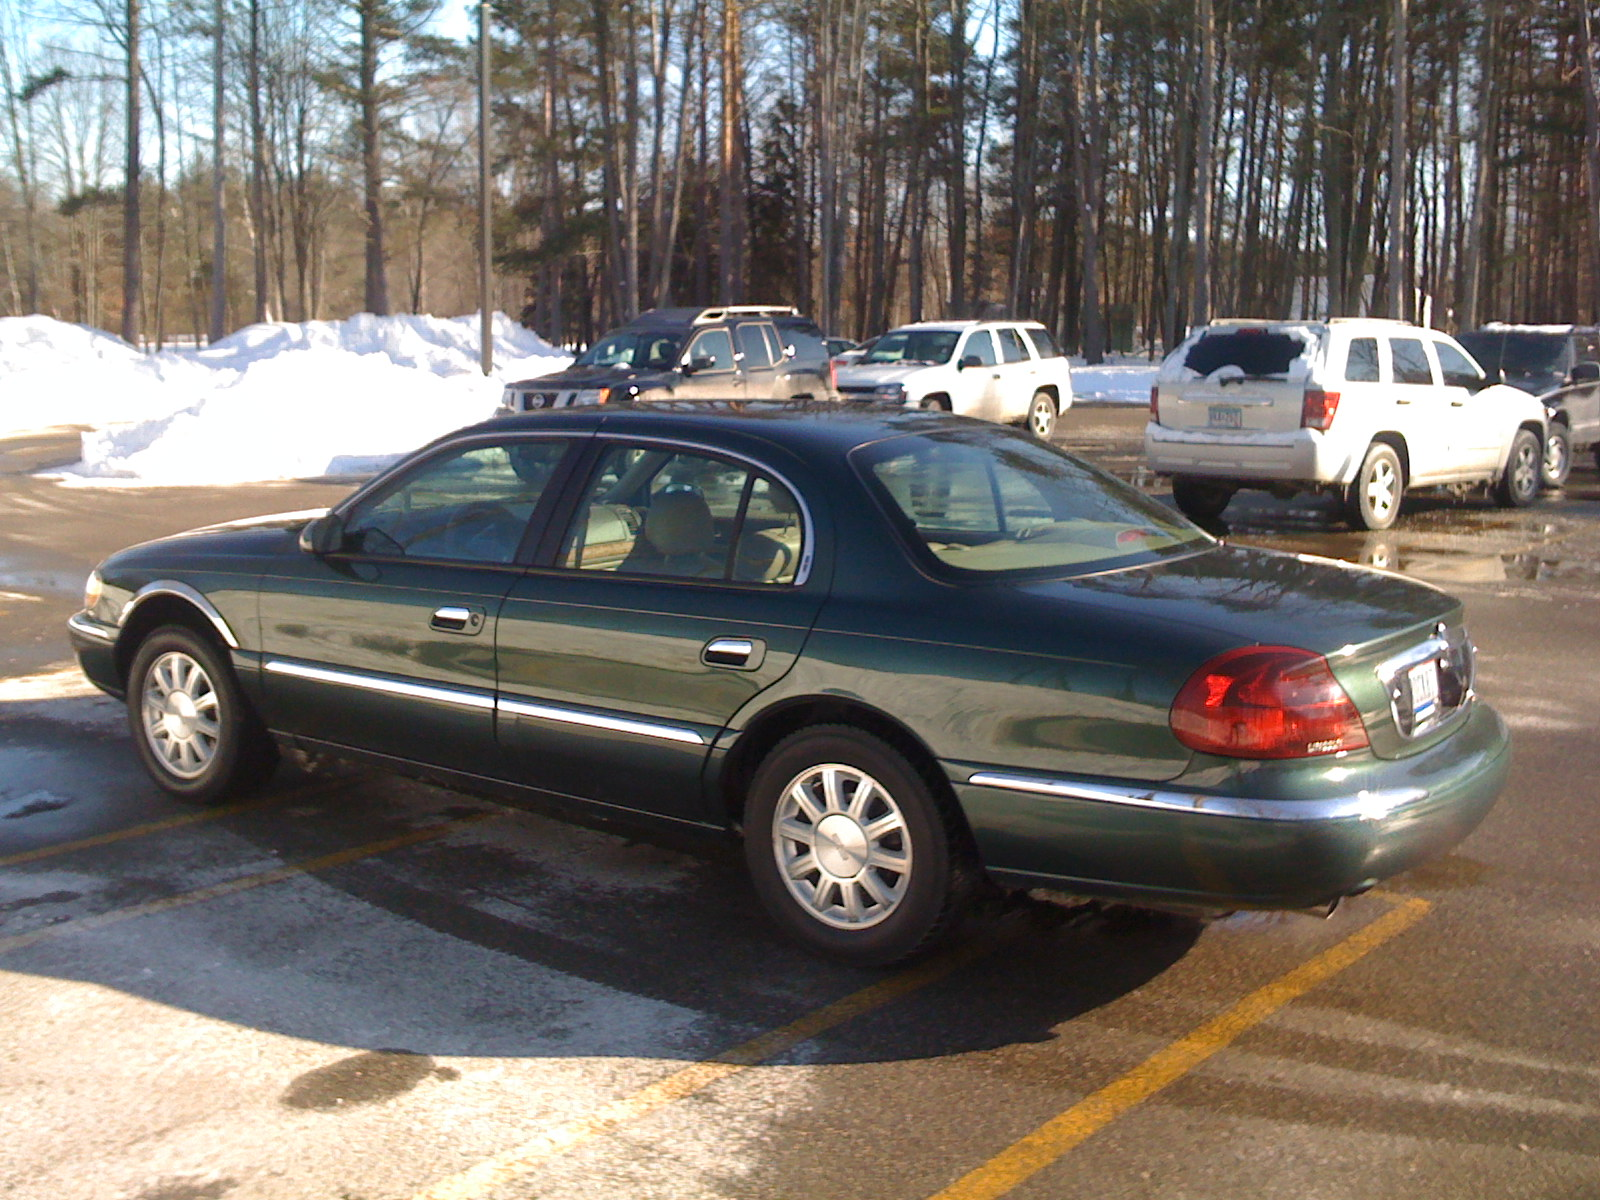 2001 Lincoln Continental Image 10